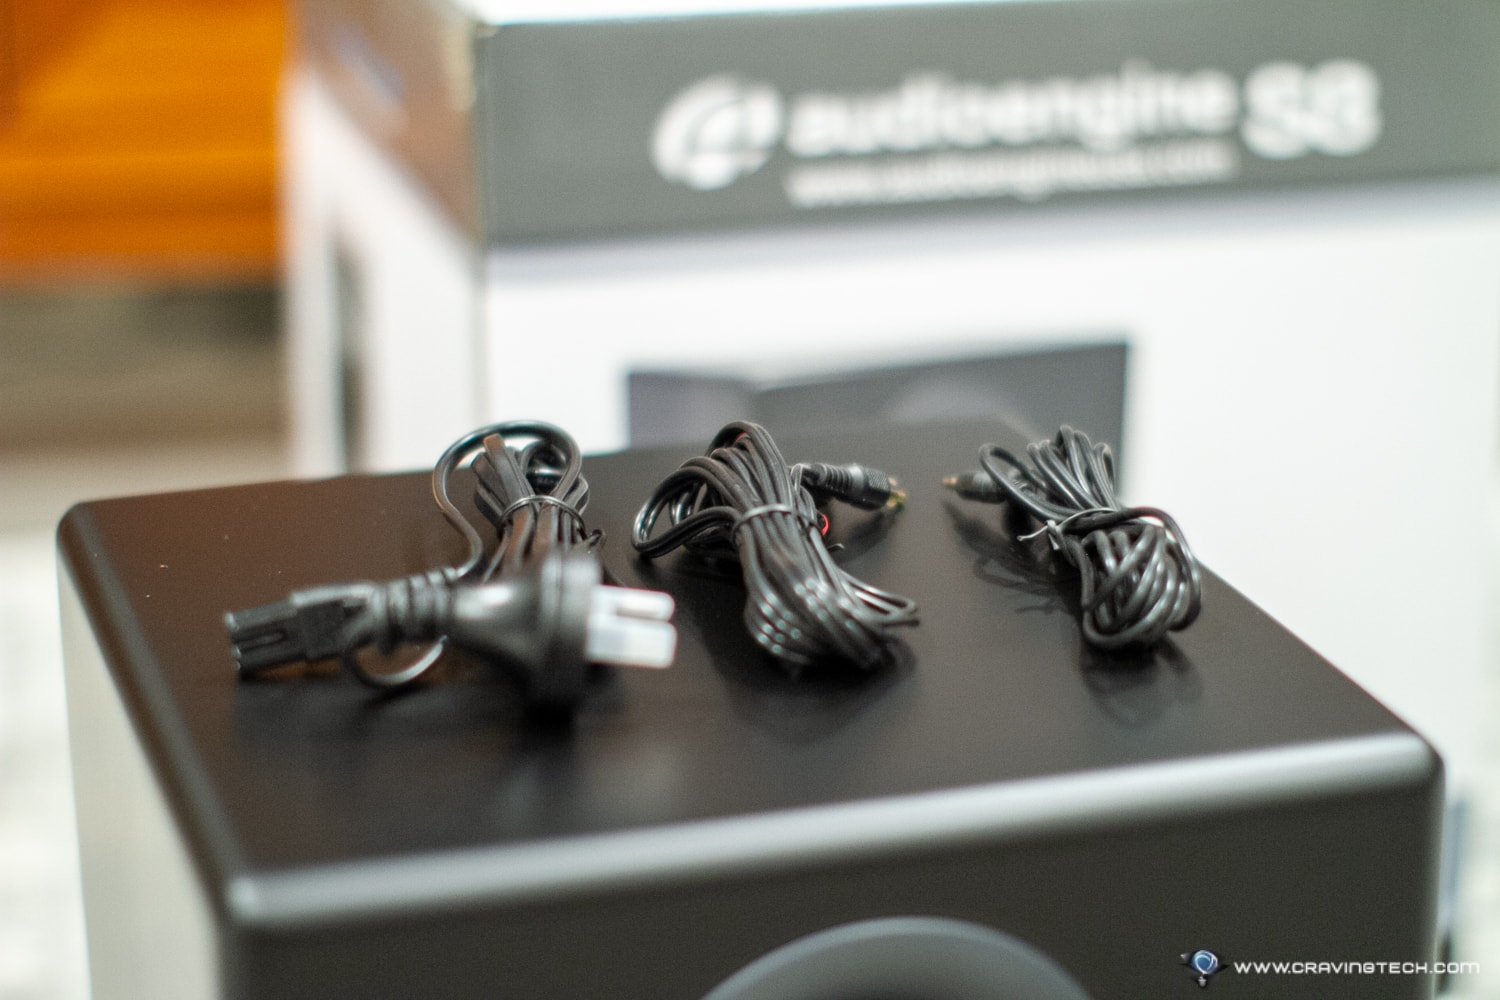 AudioEngine S8 Subwoofer cables